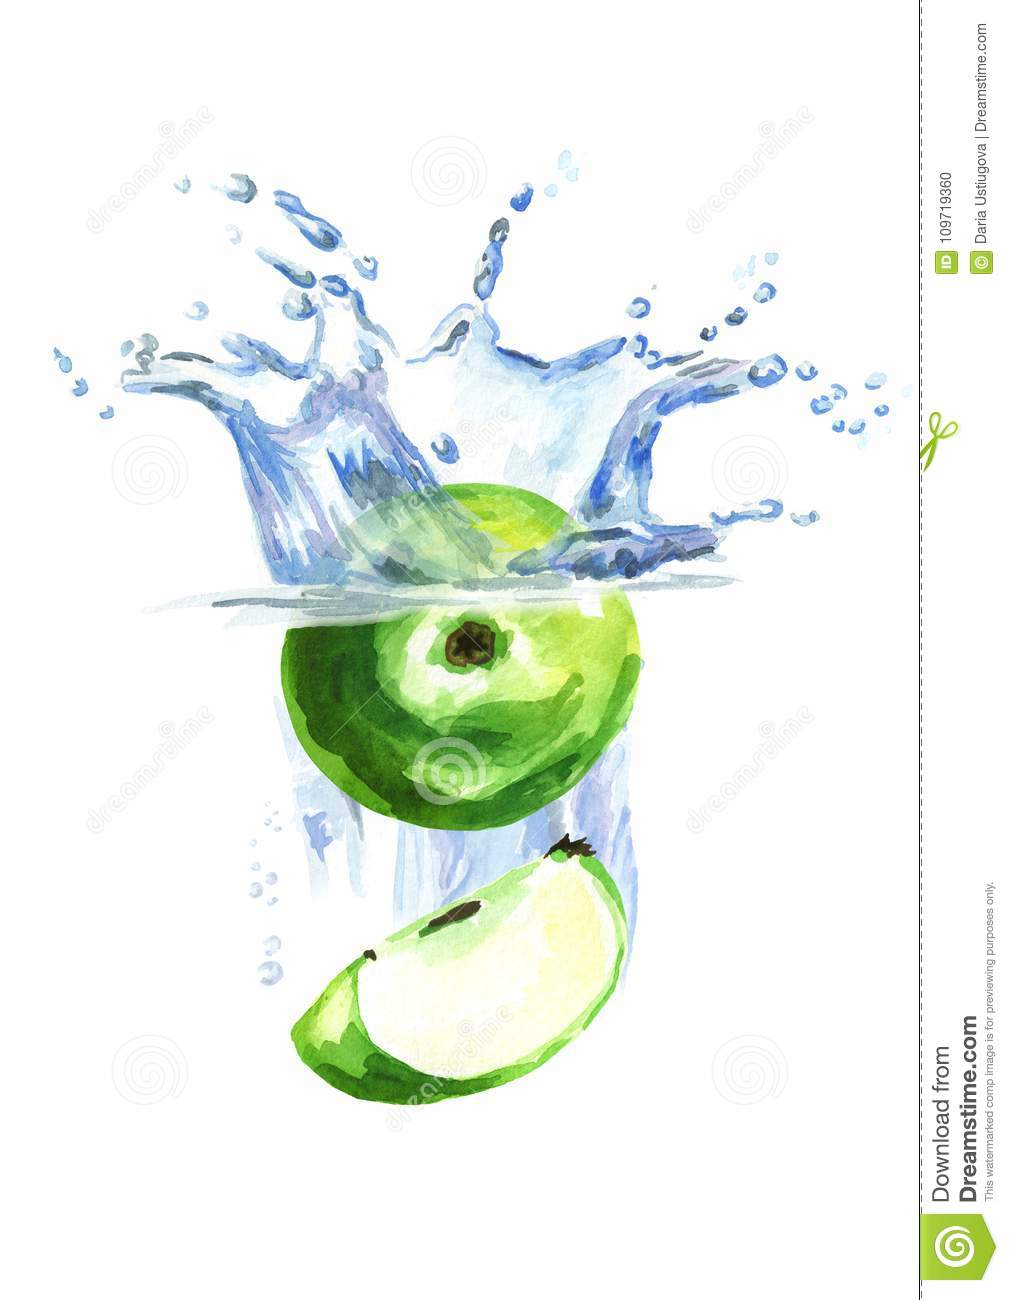 Fresh green apples falling into water isolated on white background. Watercolor hand drawn illustration